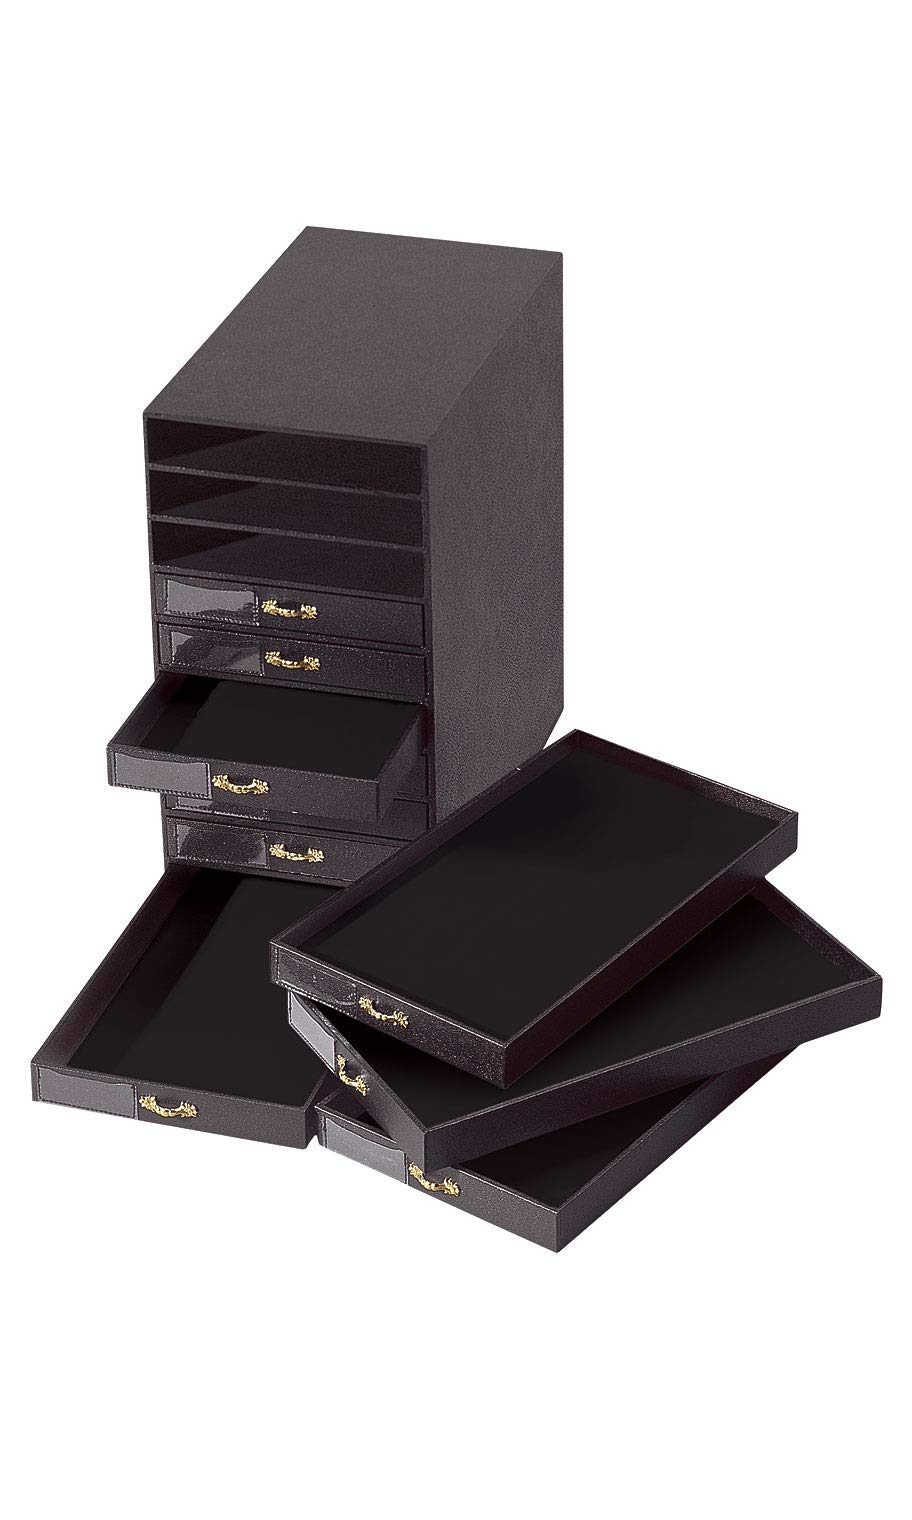 Black Faux Leather 10-Drawer Jewelry Storage Organizer - 14 5/8''L x 8 1/2''W x 16 1/4''H by SSWBasics